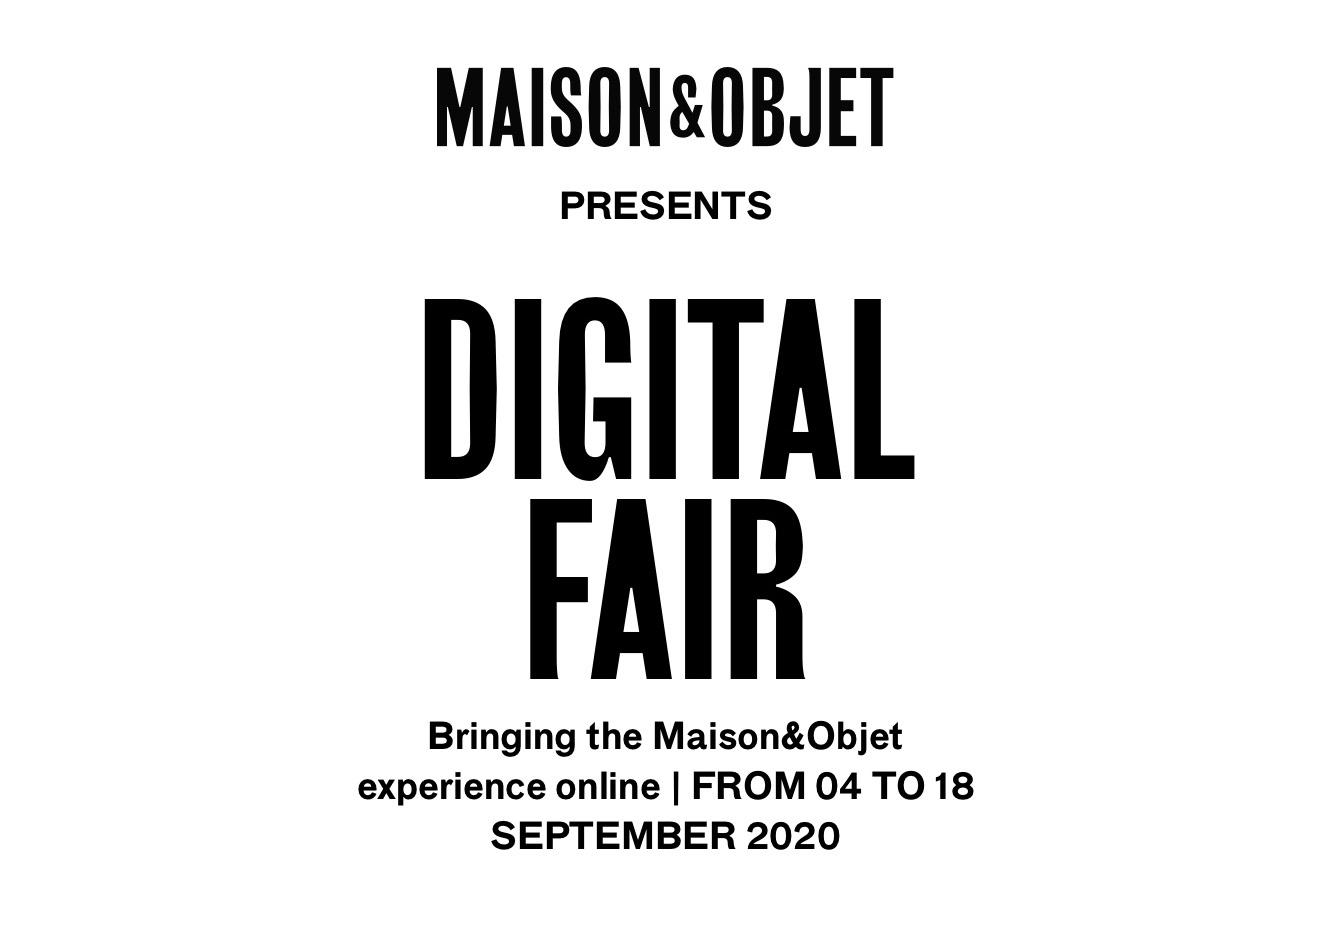 DANYÉ participates at the Digital Fair, organized by Maison&Objet, from the 4th to the 18th of September